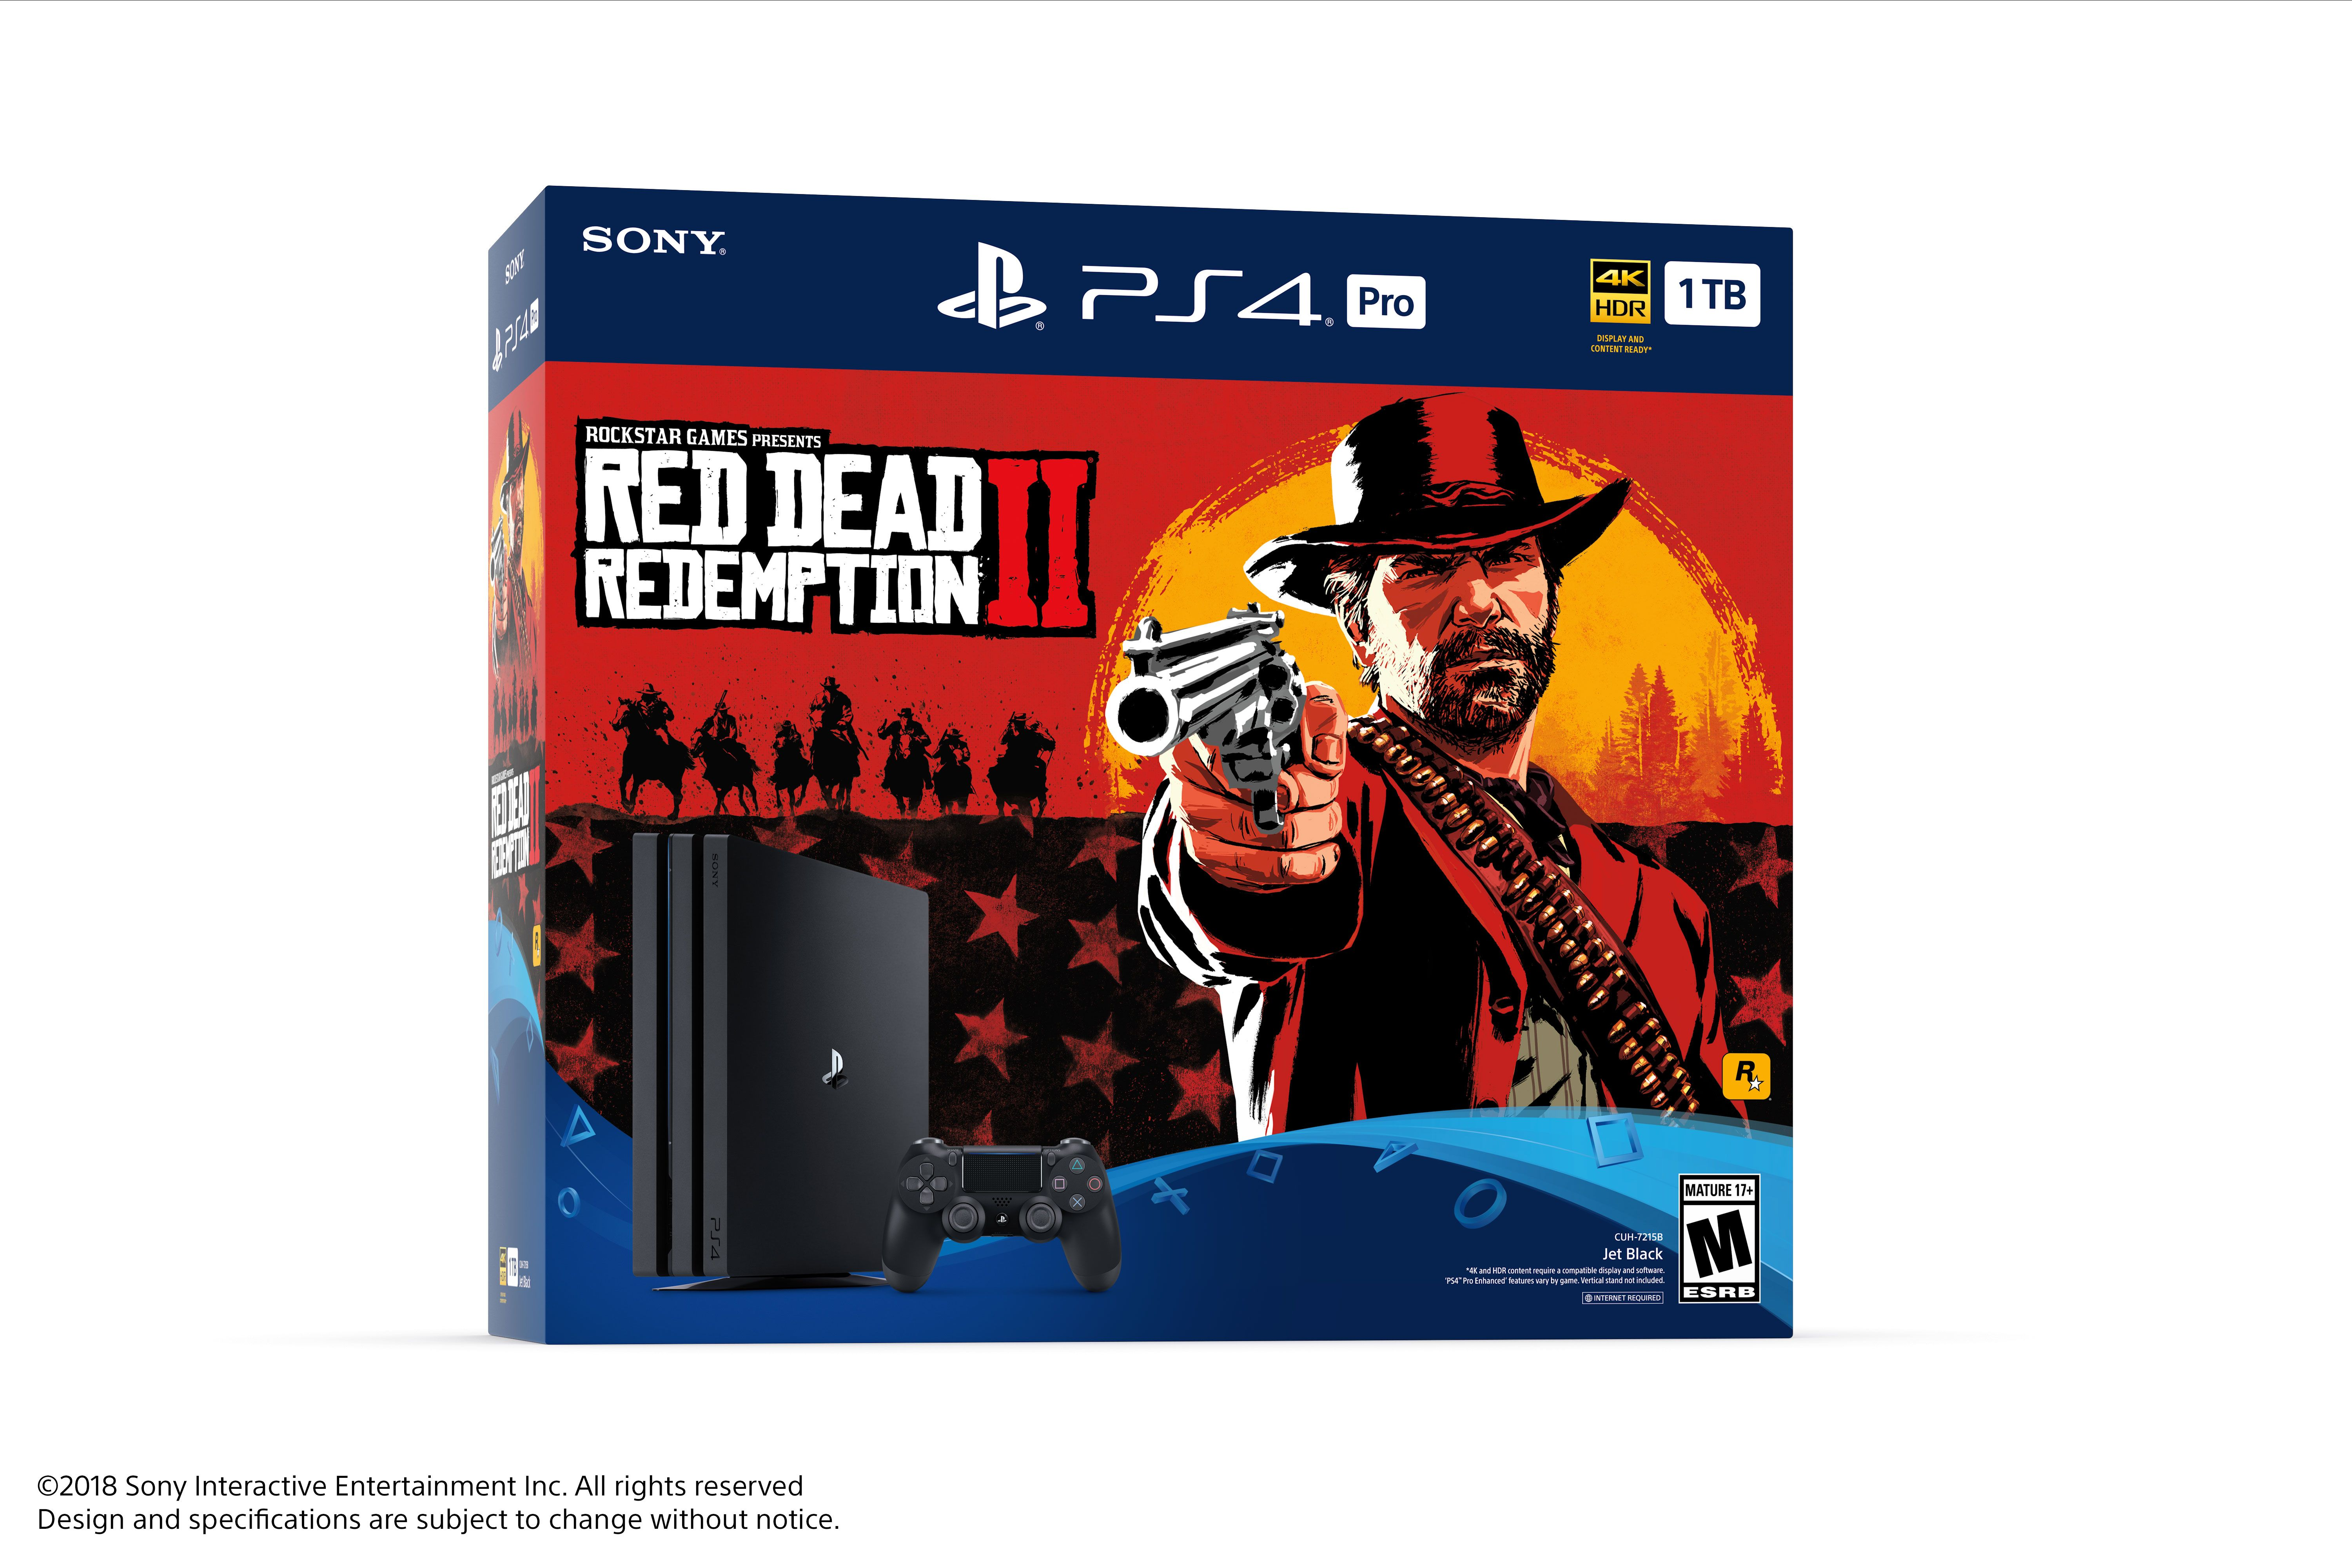 Sony Playstation Red Dead Redemption 2 Ps4 Pro Bundle Red Dead Sony Flanker In 2019 Red Dead Redemption Ii Ps4 Or Xbox One Red Dead Redemption